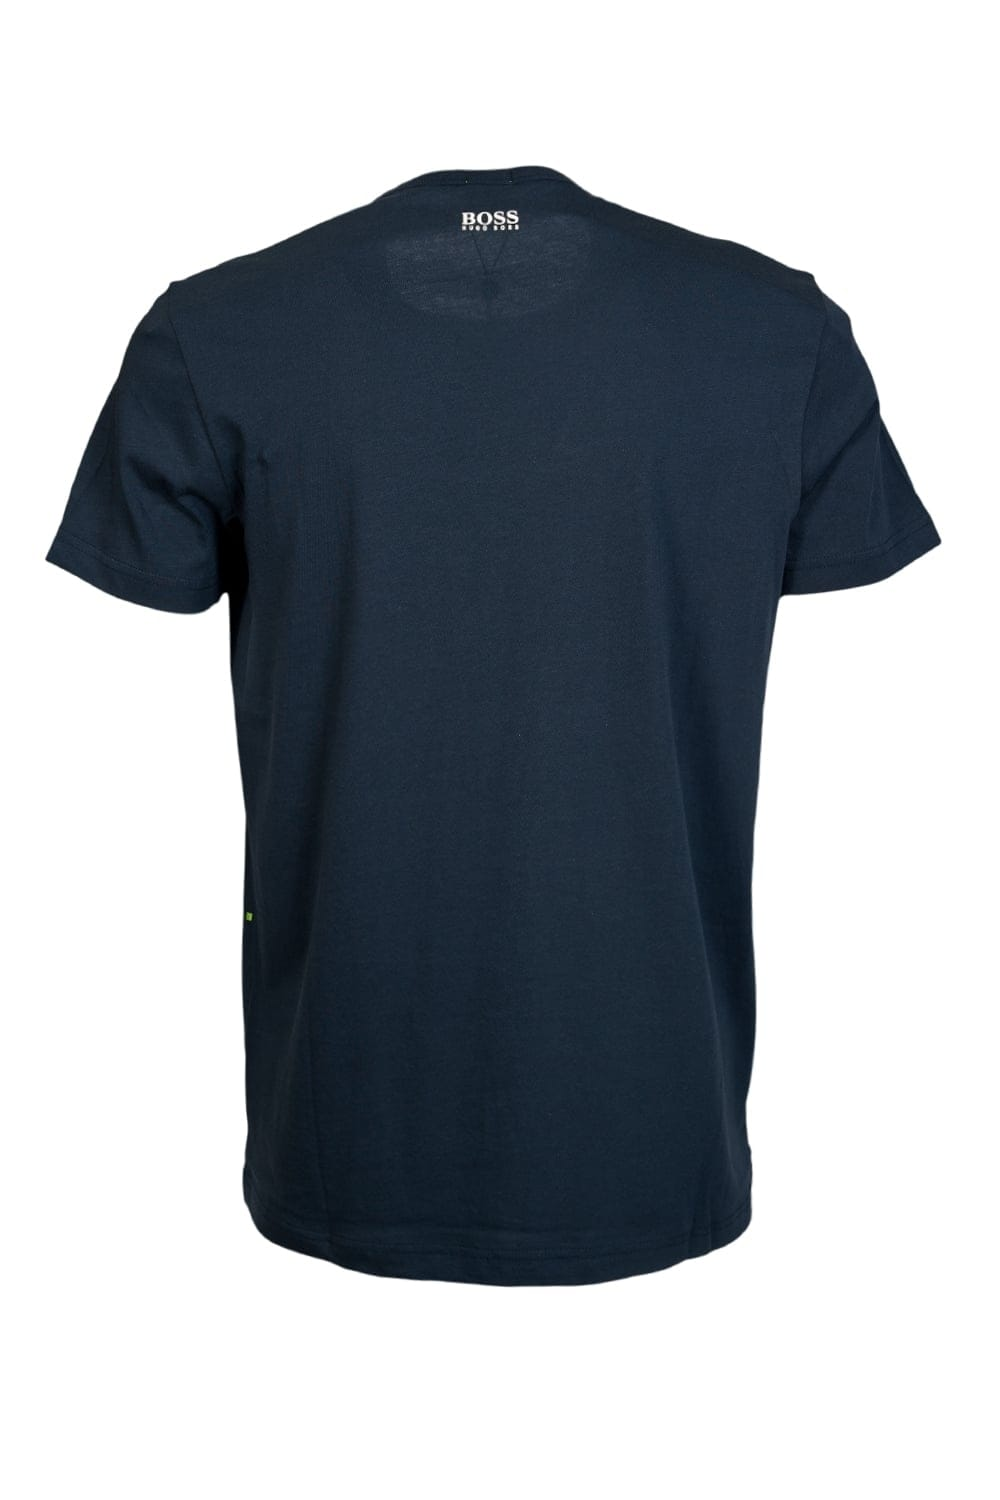 Hugo boss t shirt tee 1 50309989 hugo boss green from for Hugo boss t shirts online